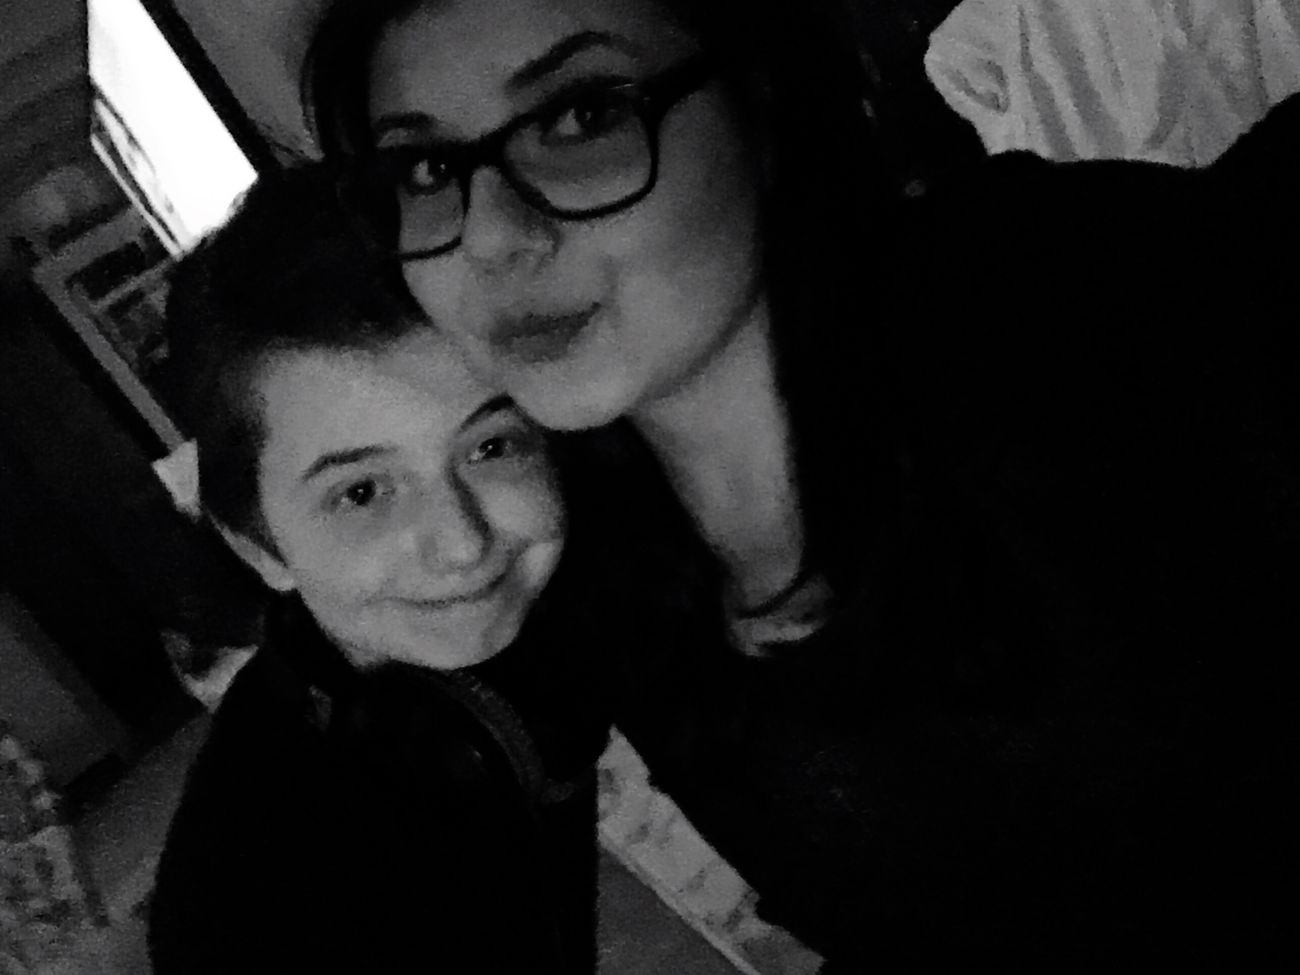 Taking Photos Me And My Brother  Blackops3 Somuchfun Österreich Playing Games